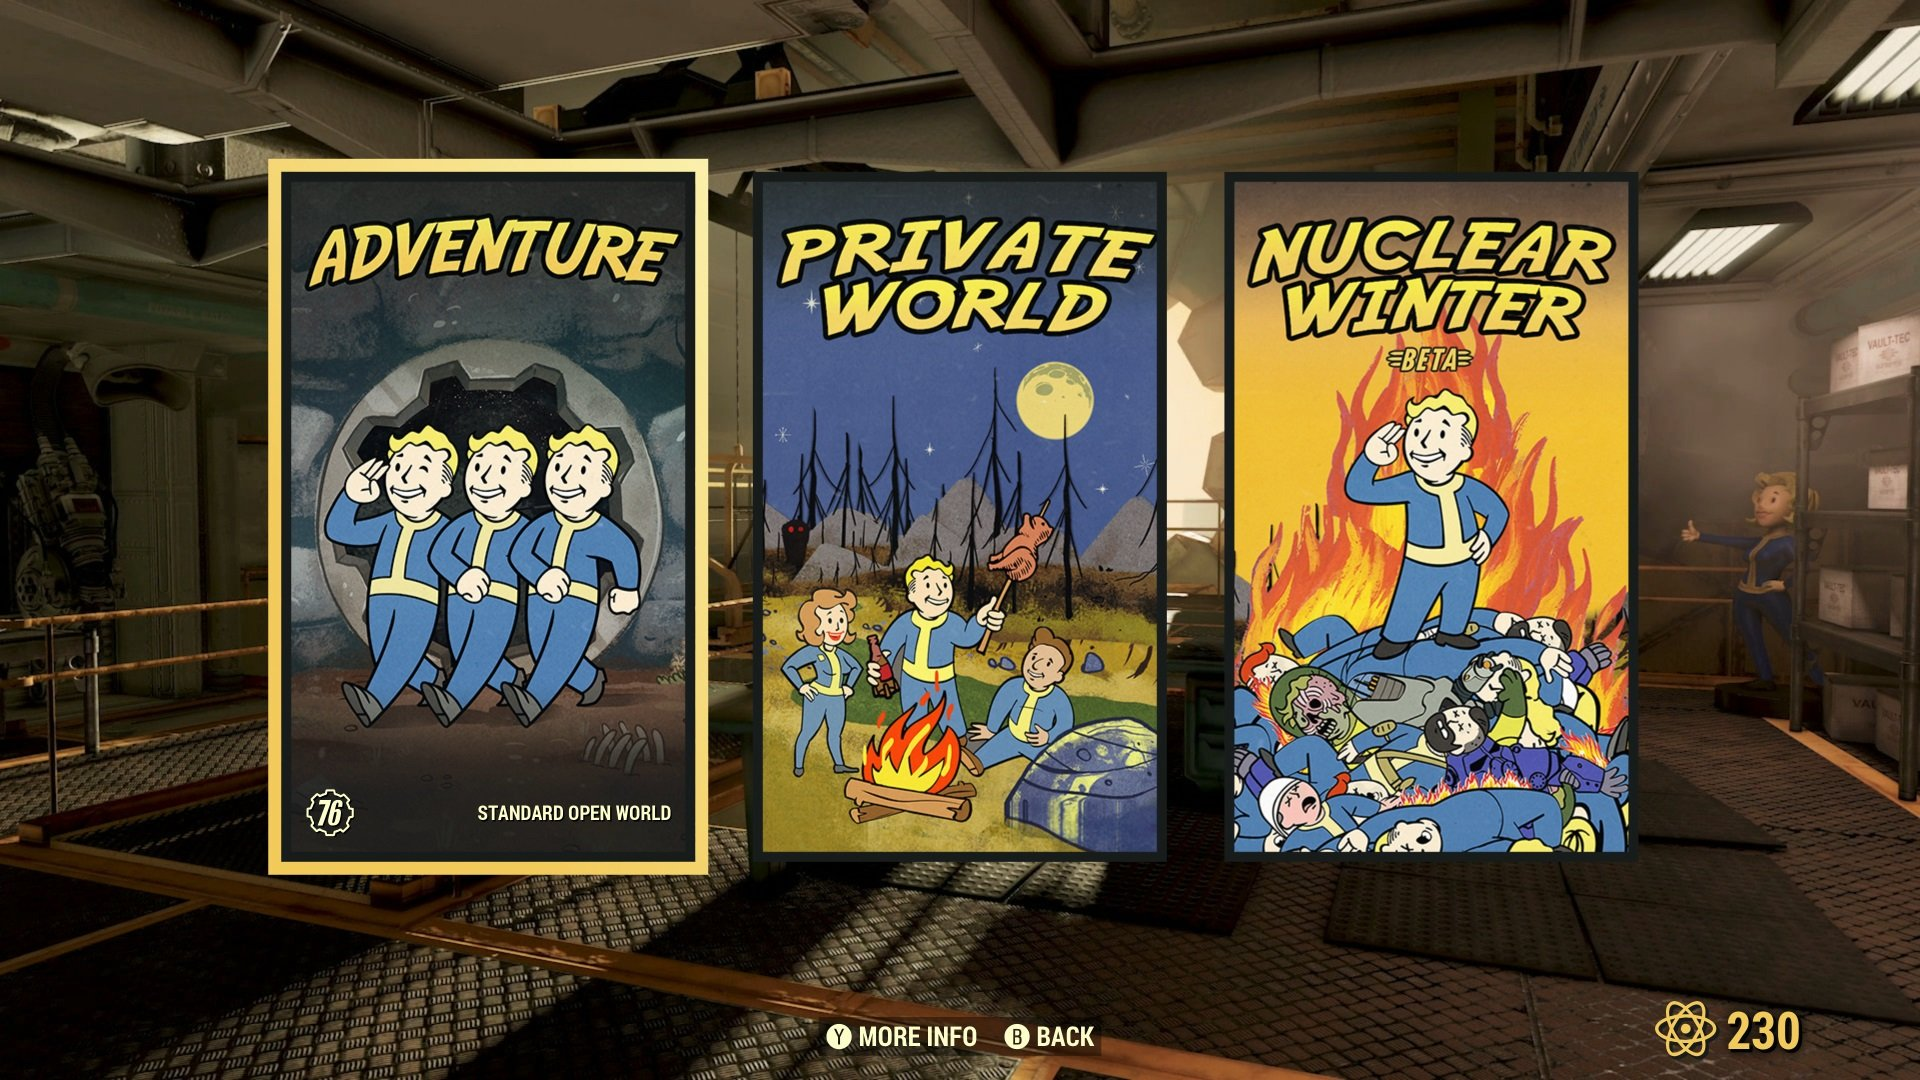 Private servers will be available starting next week to anyone who purchases Private Worlds for Fallout 76.